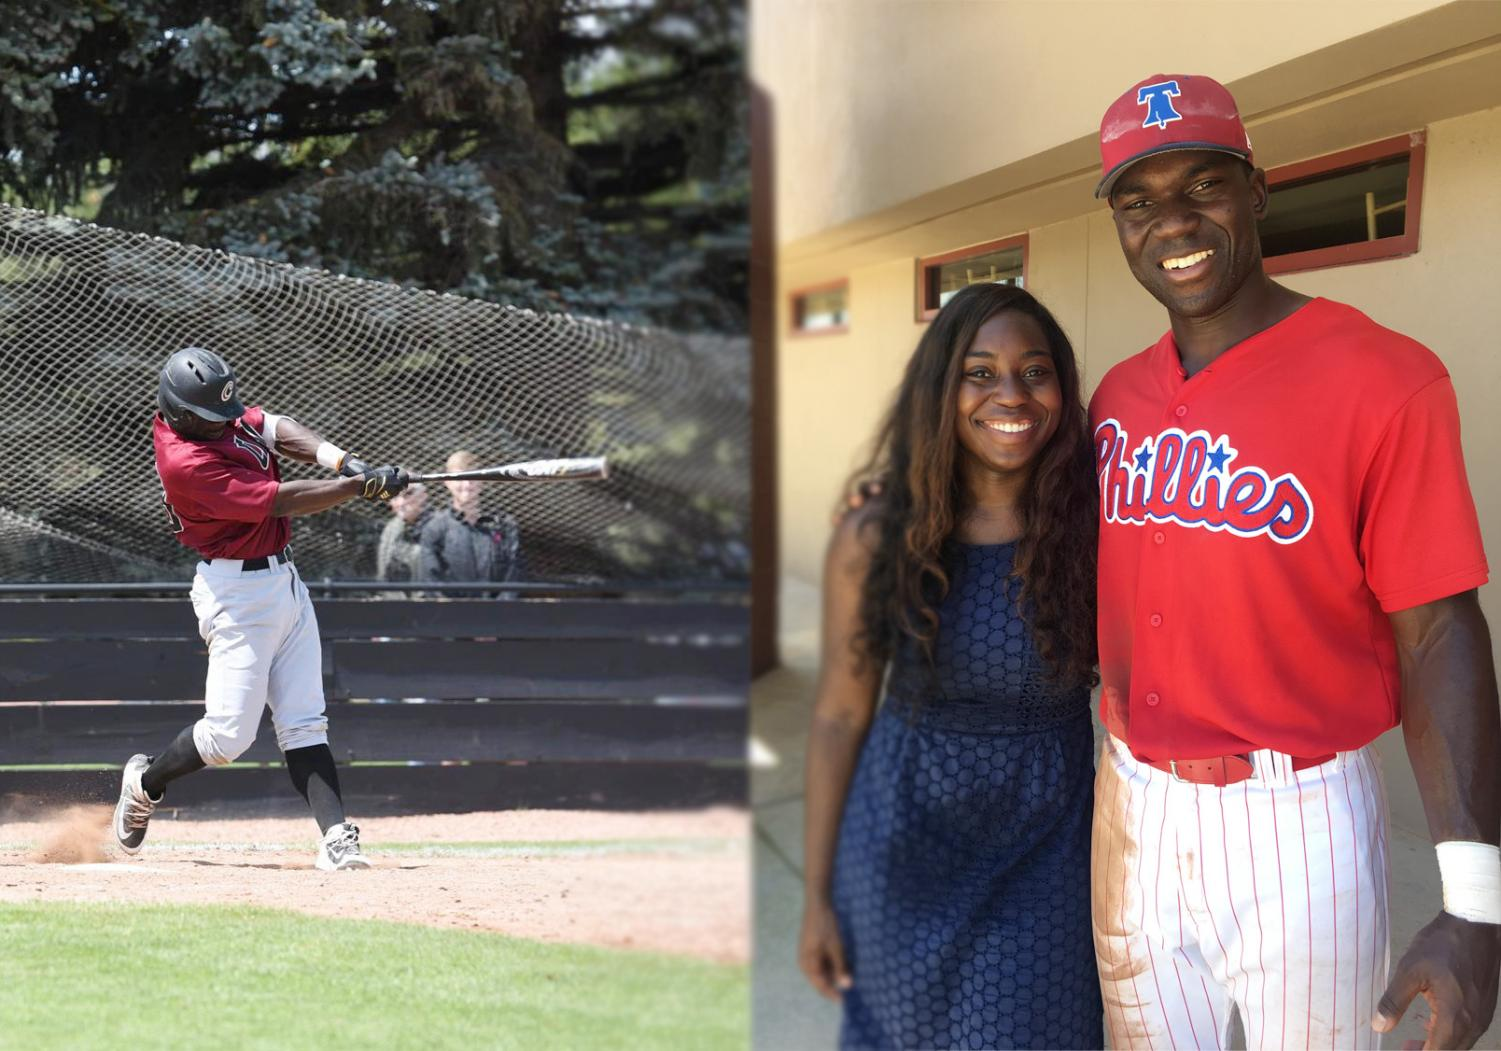 (Left) Smith III while playing at CWU. (Right) Smith III alongside his sister. Smith III is now officially a part of the Philadelphia Phillies organization.